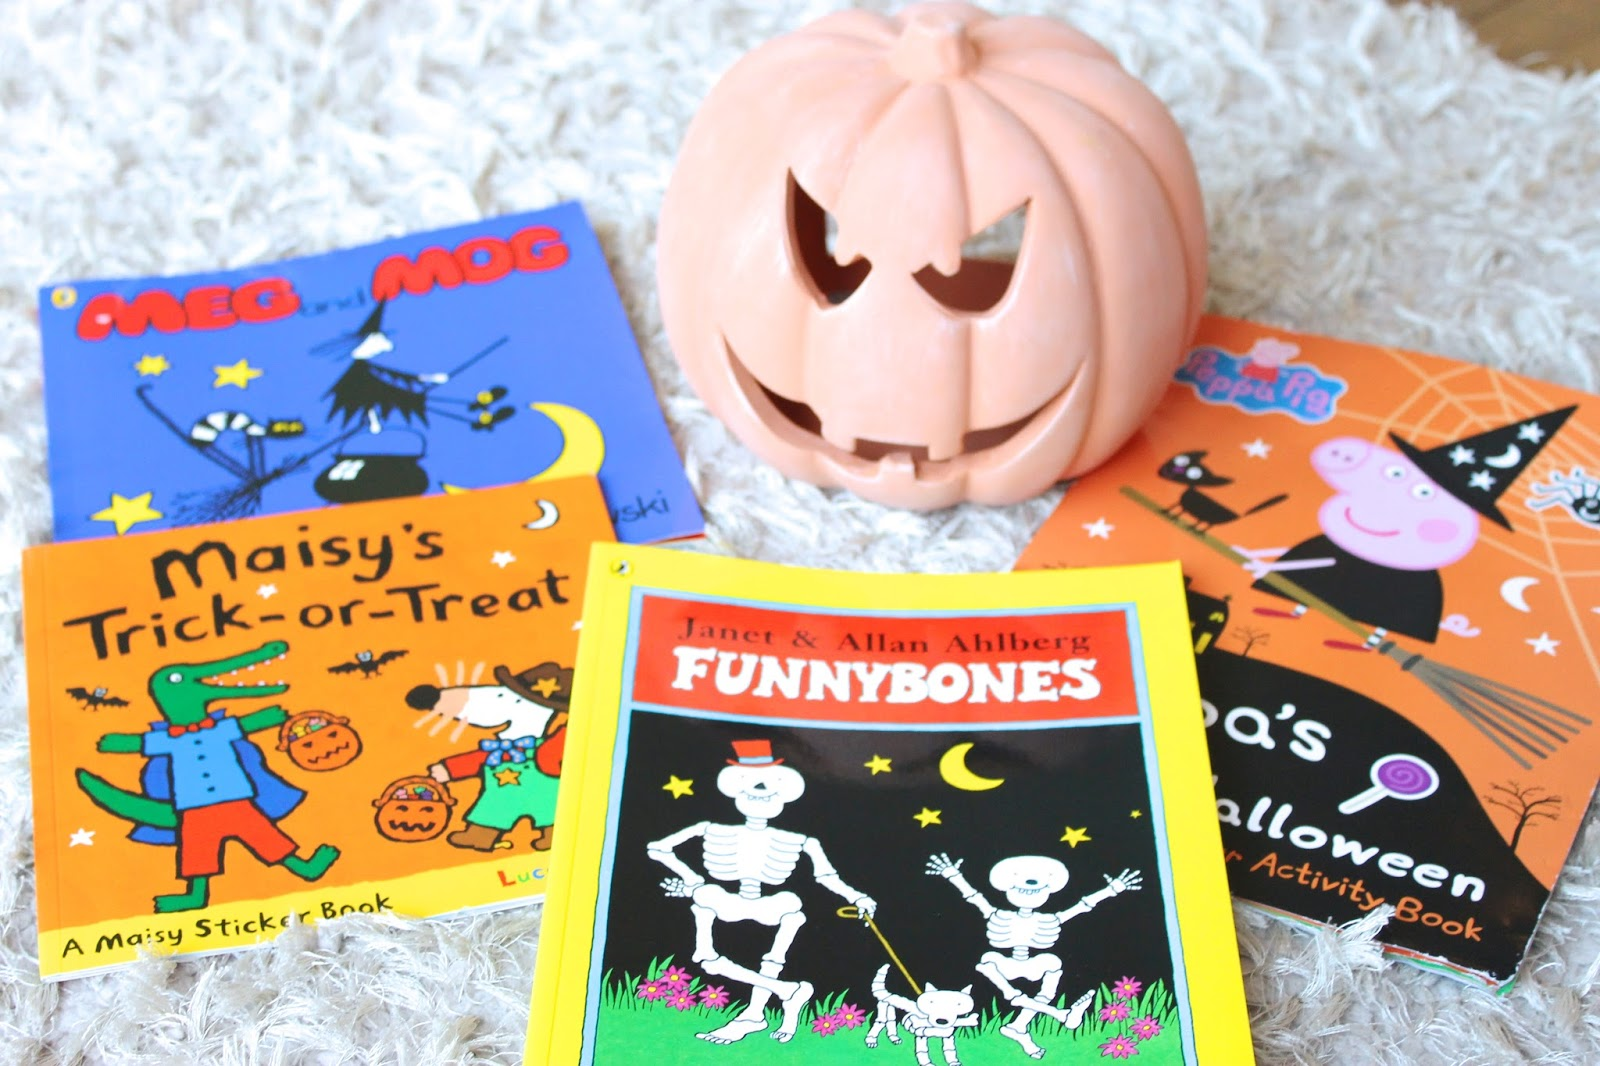 kids books halloween, halloween books, childrens books for halloween, toddler books for halloween